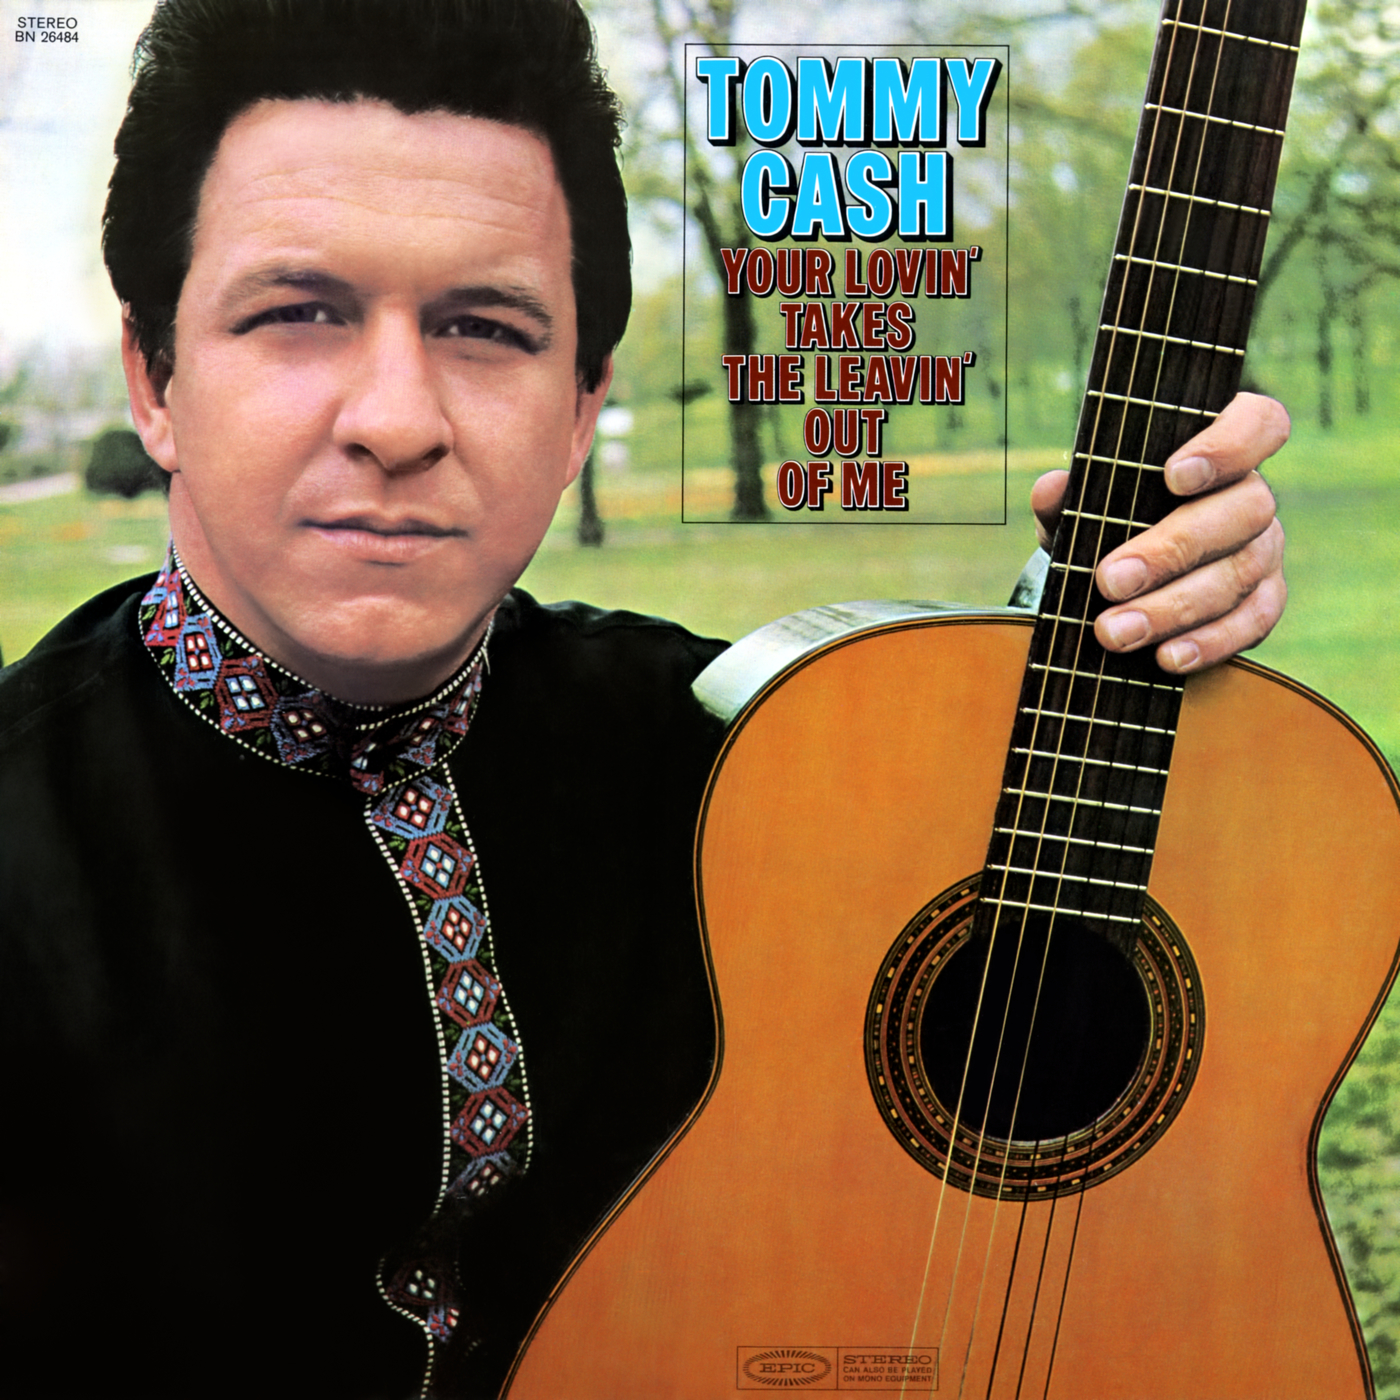 Your Lovin' Takes the Leavin' Out of Me - Tommy Cash